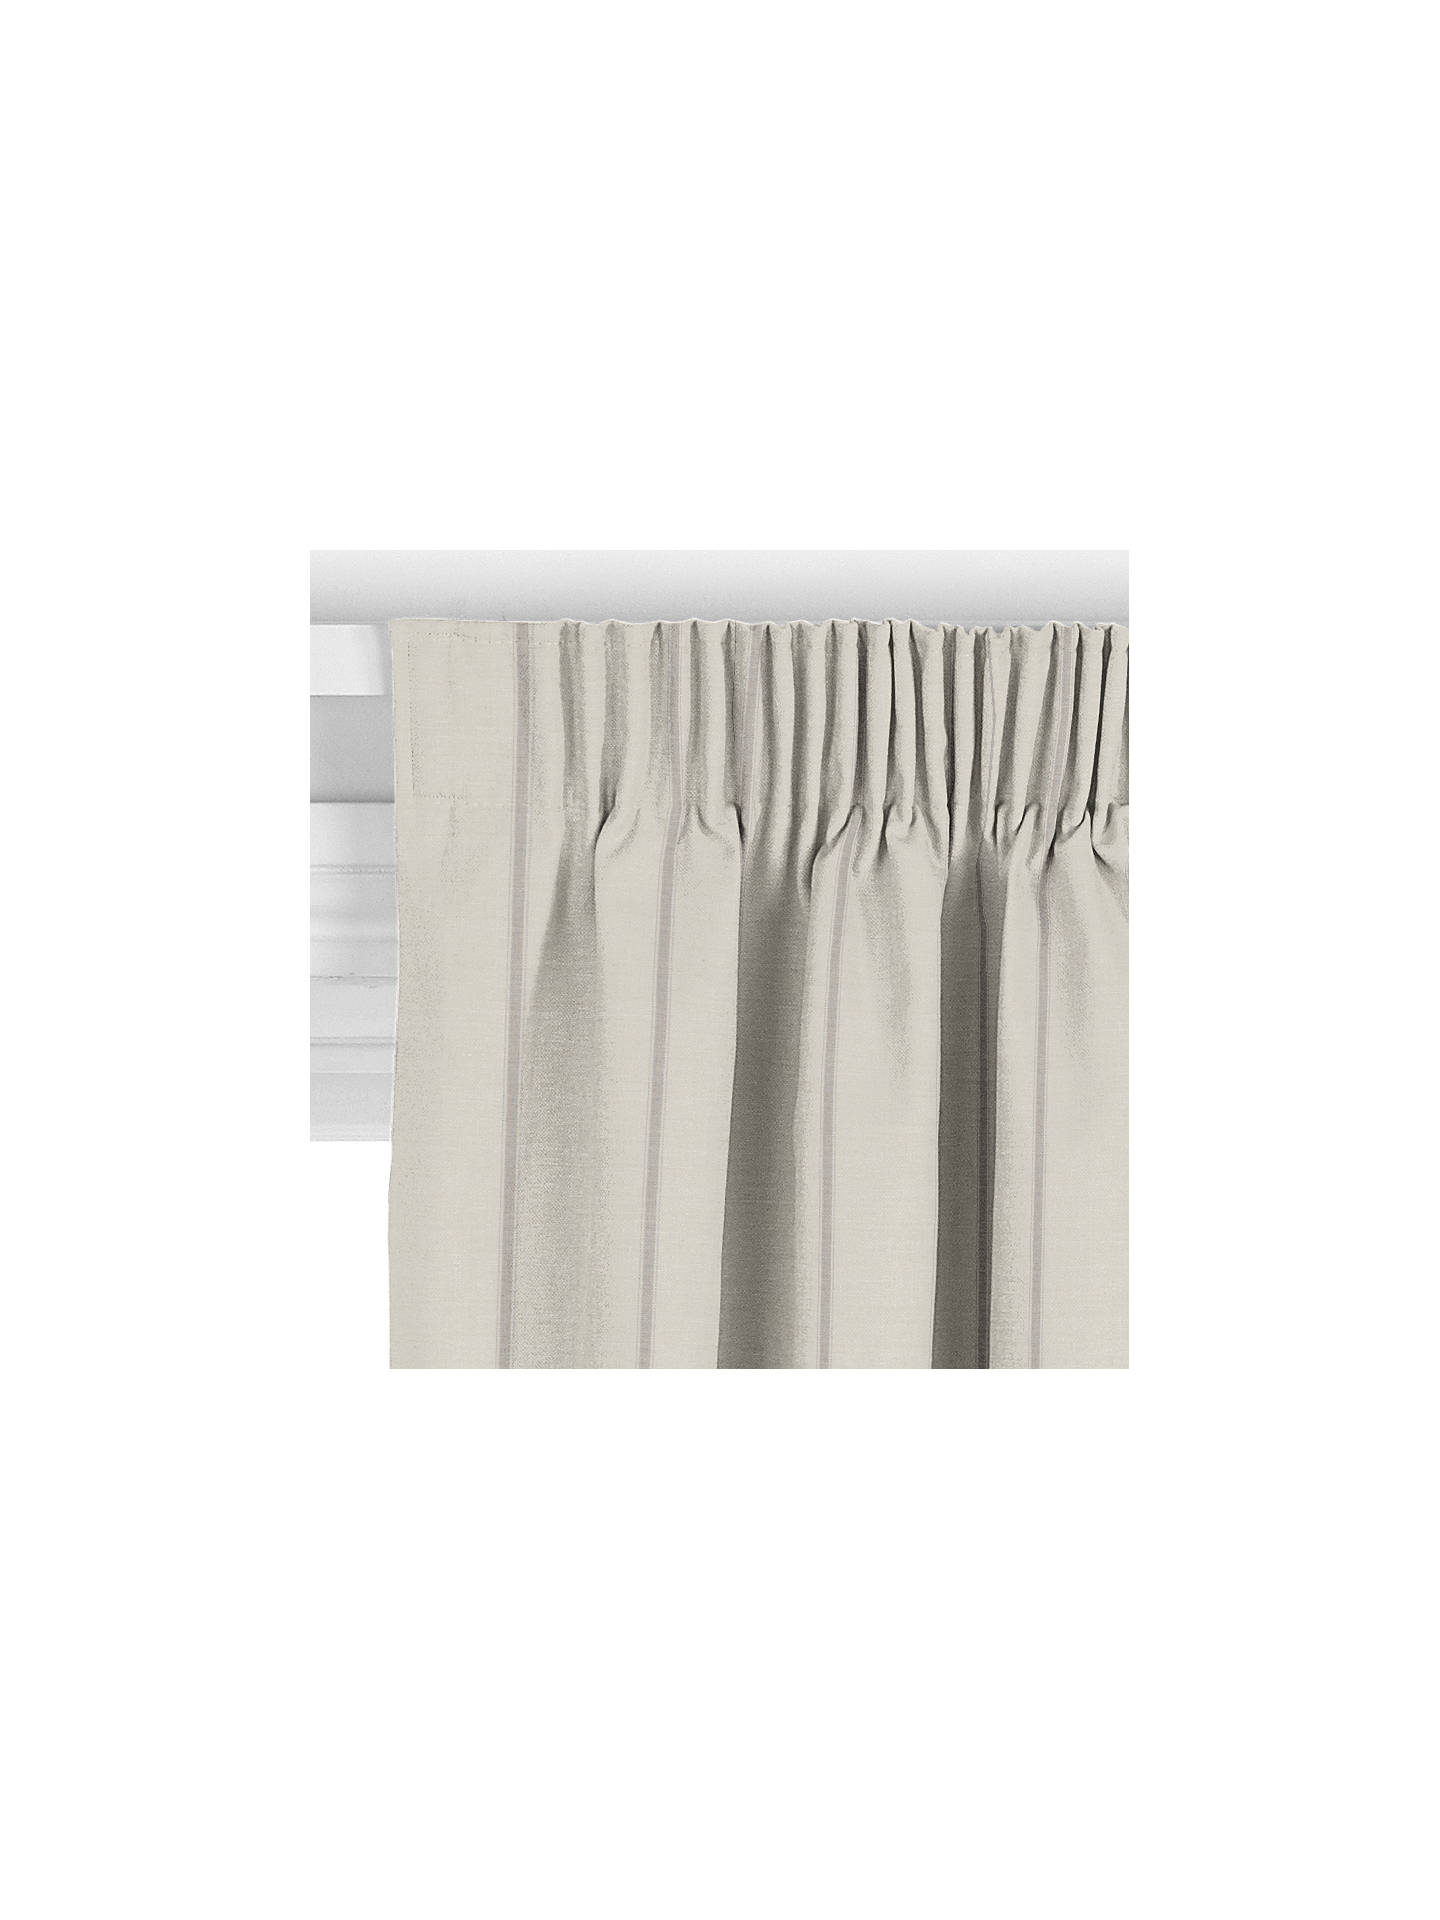 BuyJohn Lewis & Partners Padstow Stripe Curtain, White / Grey Online at johnlewis.com